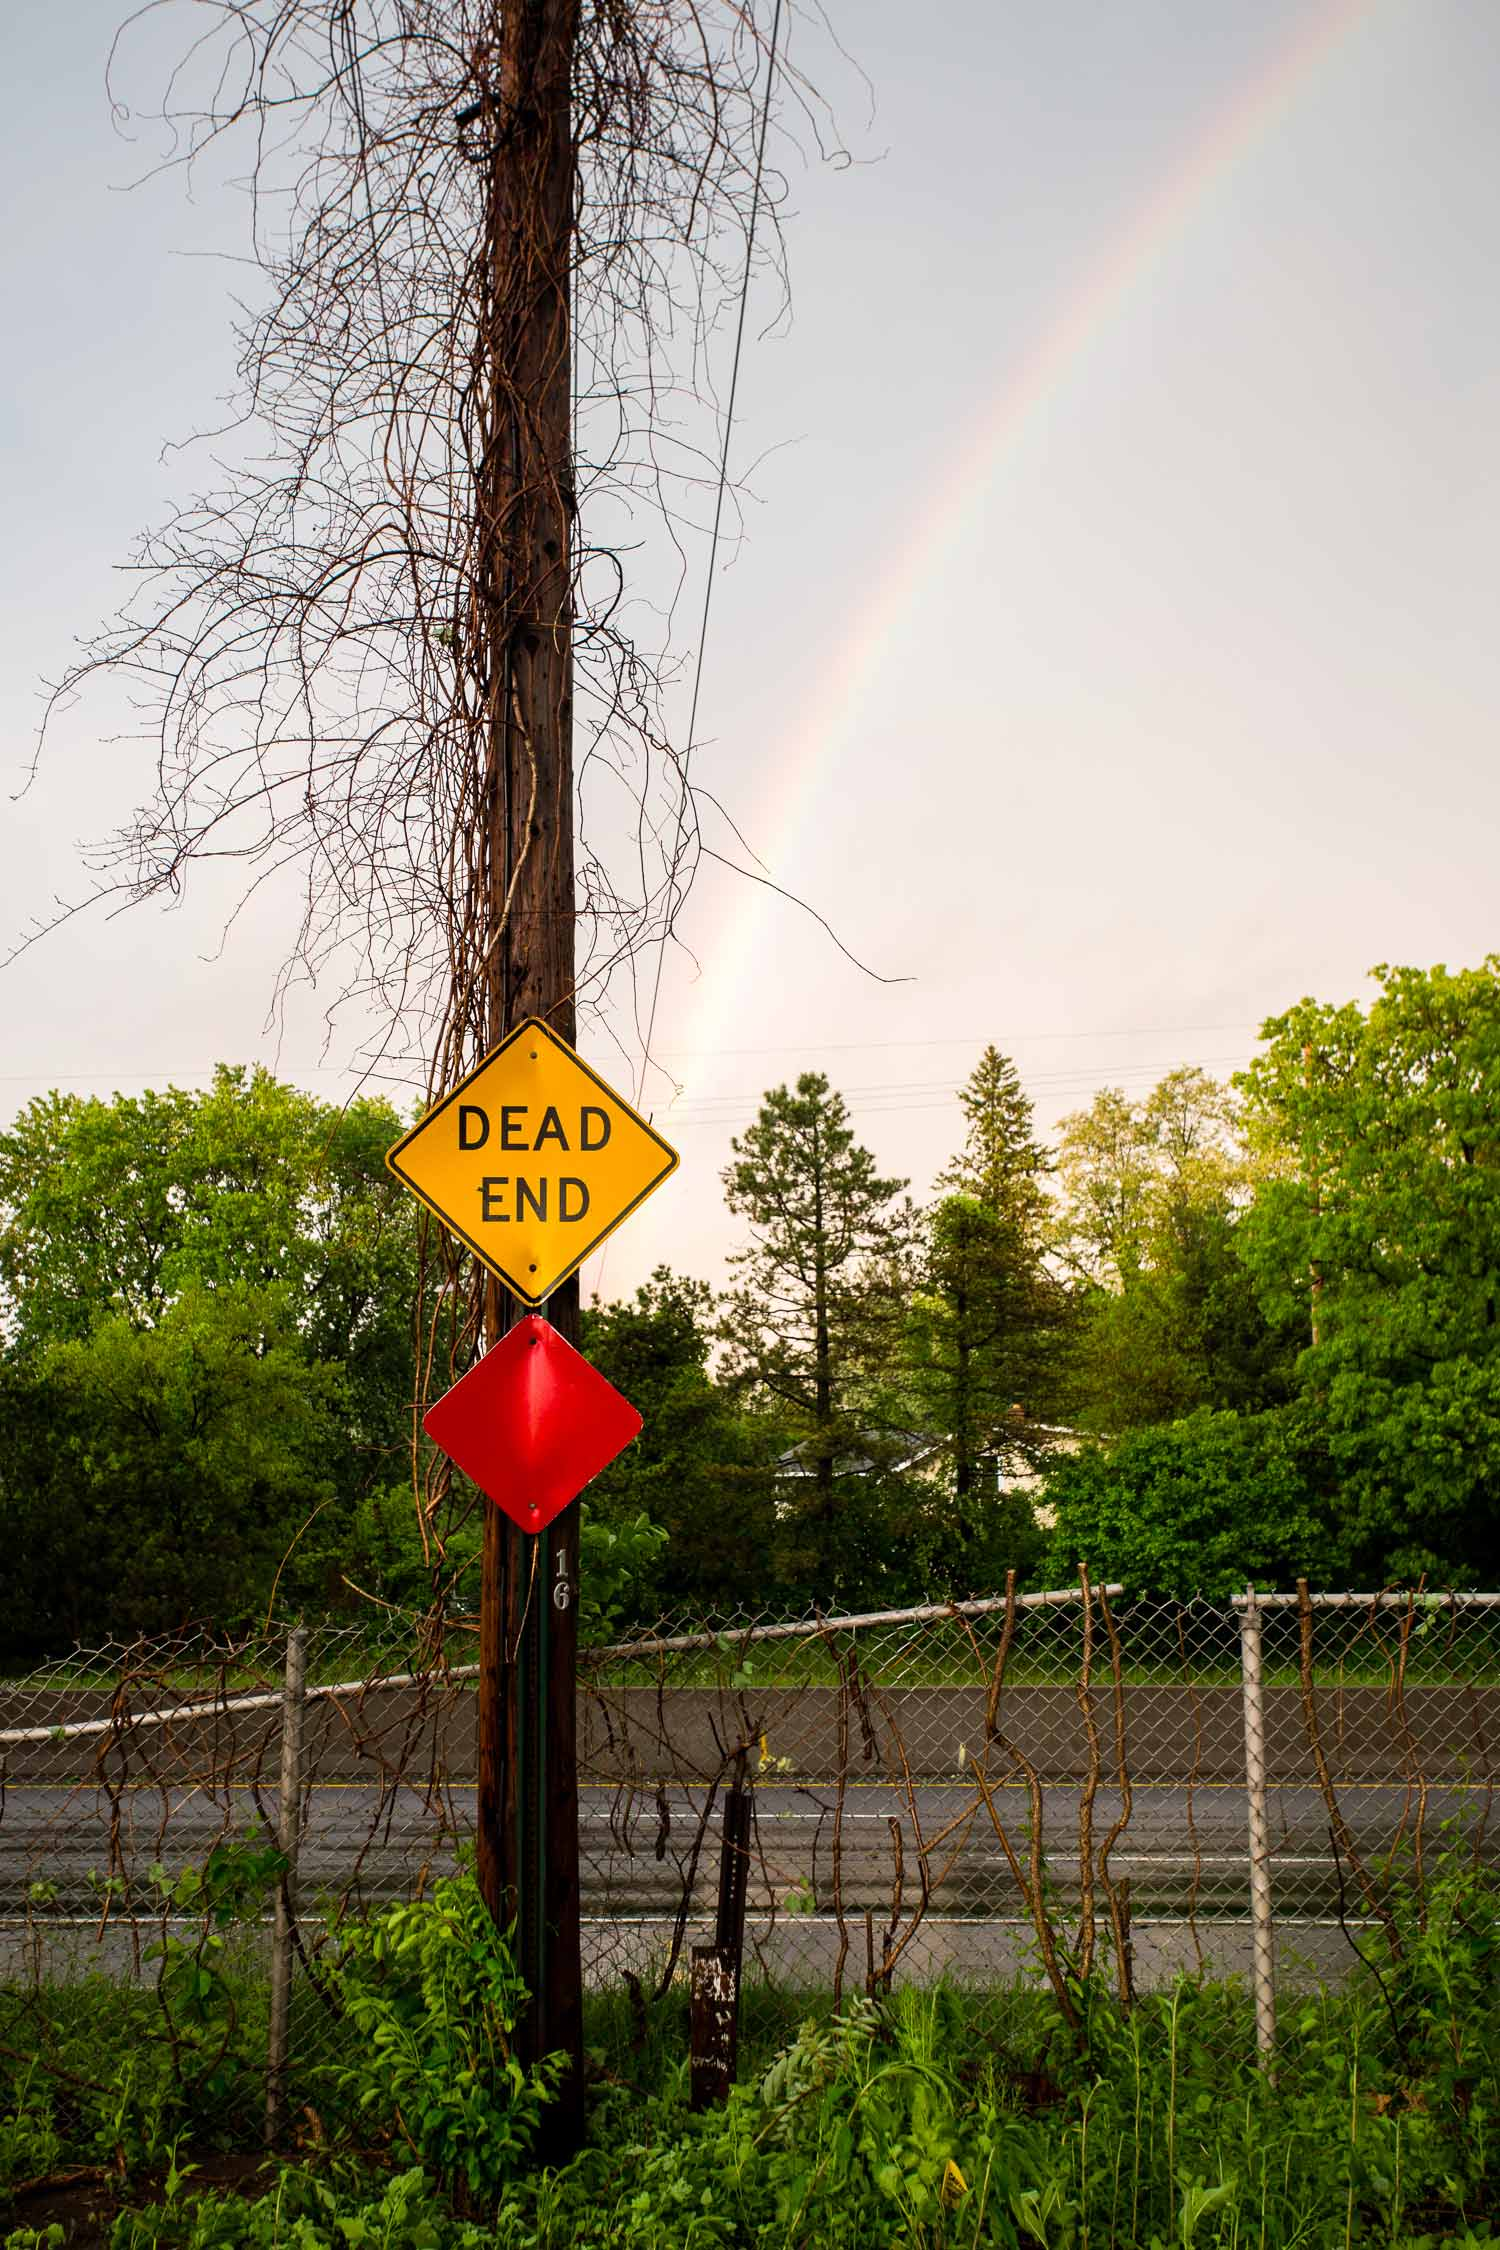 This rainbow decided to make a political statement about life in the suburbs.